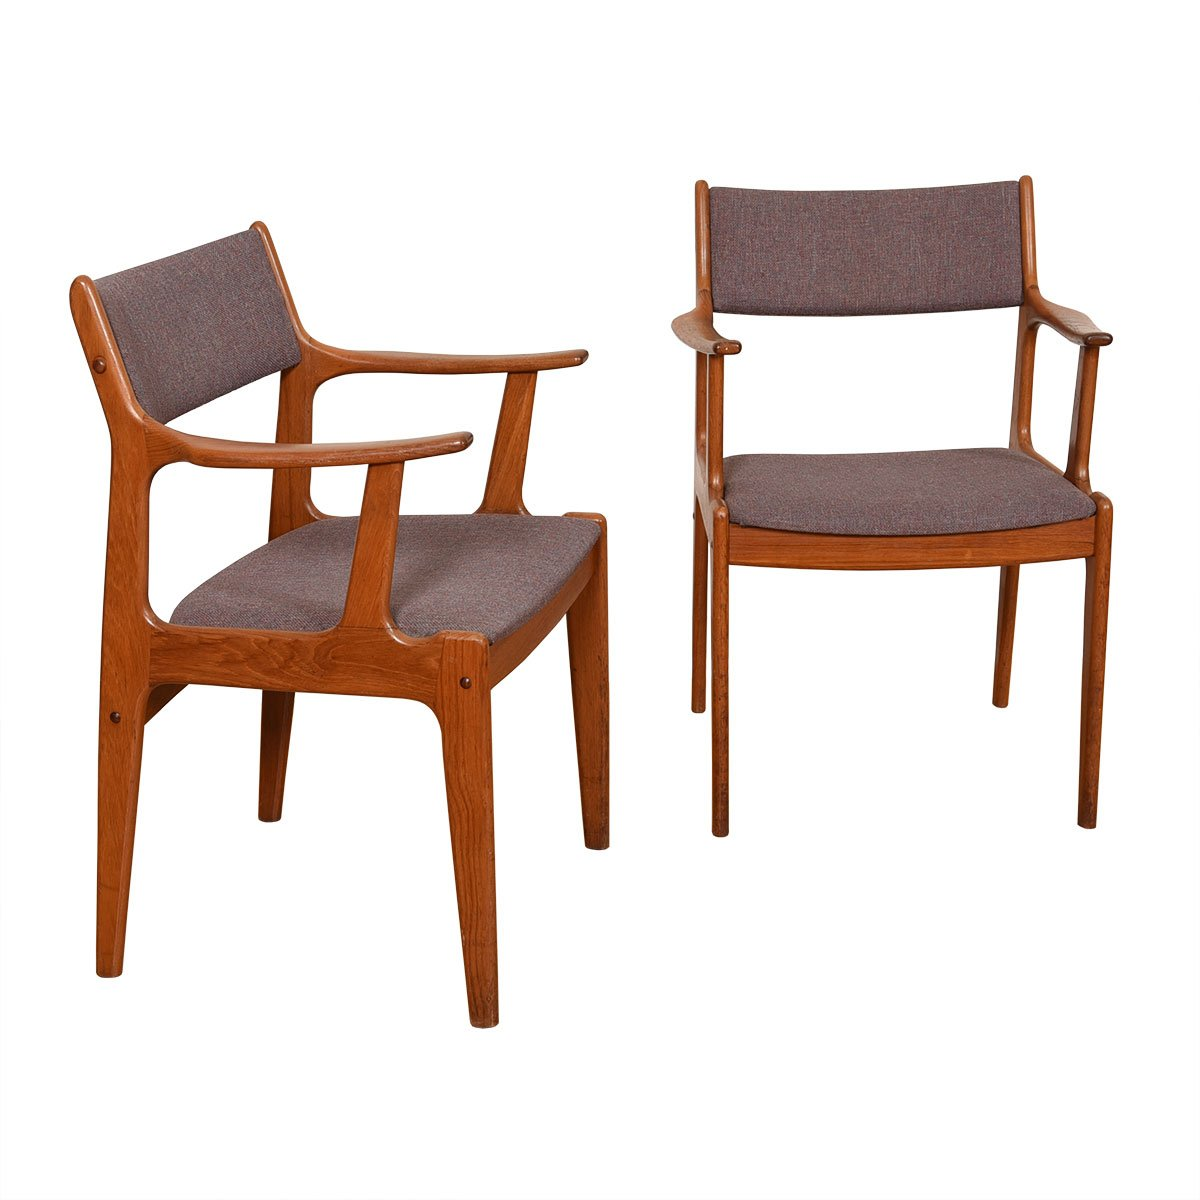 Pair of Danish Modern Teak Dining / Accent Arm Chairs